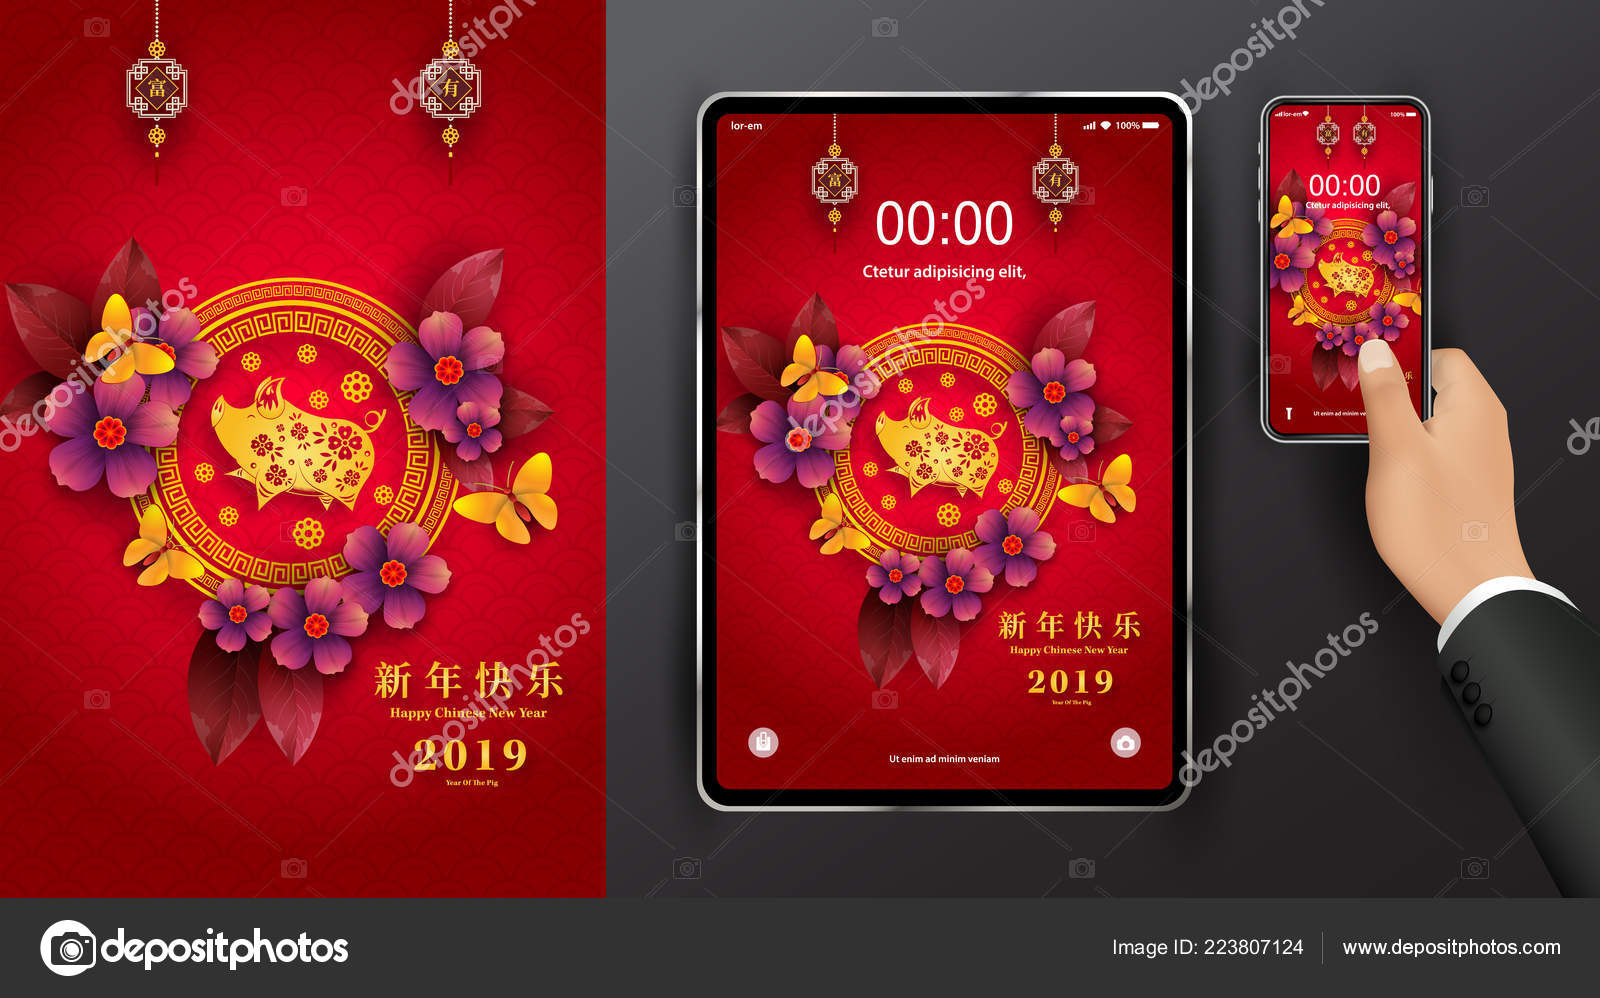 Images: chinese new years wallpaper  Happy Chinese New Year